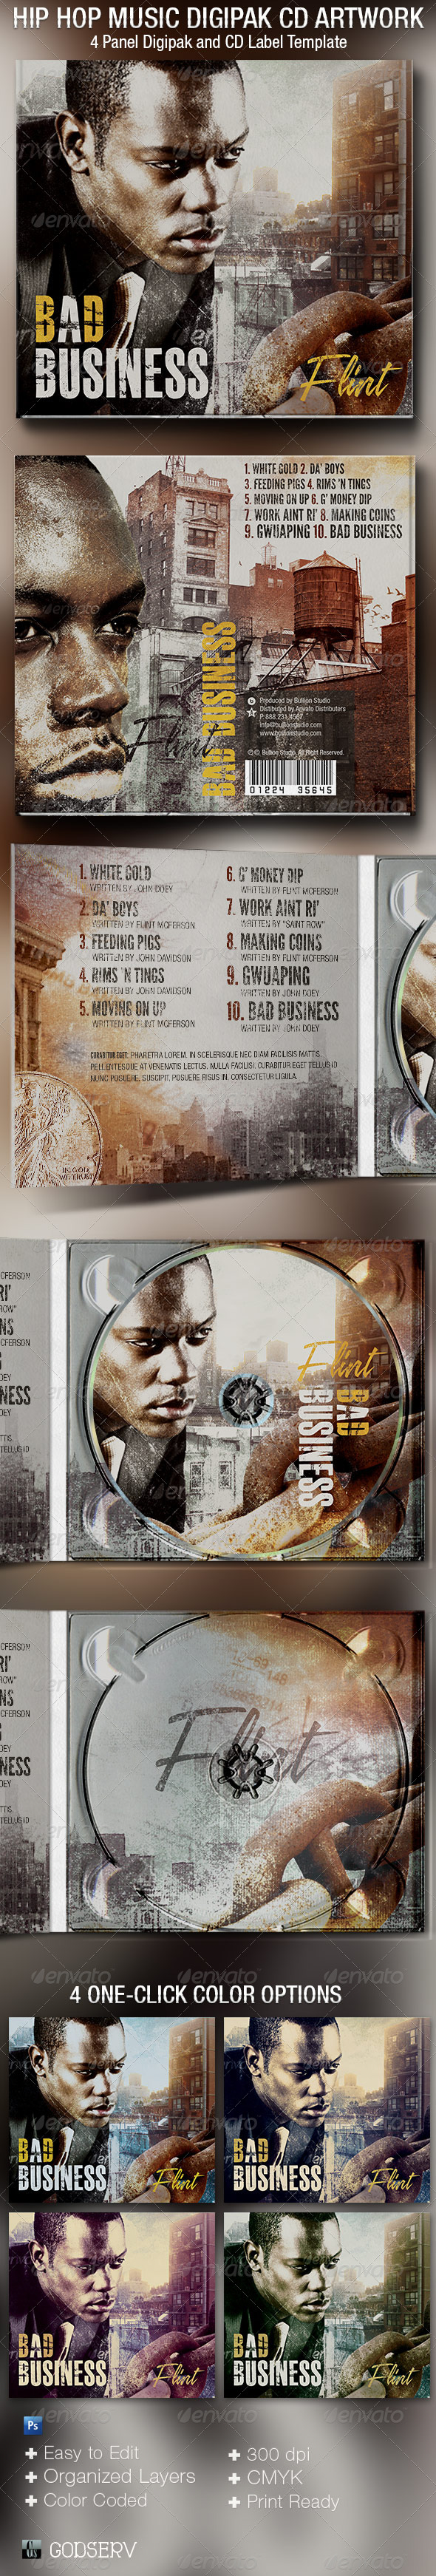 Hip Hop 4 Panel Digipak CD Artwork Template - CD & DVD Artwork Print Templates